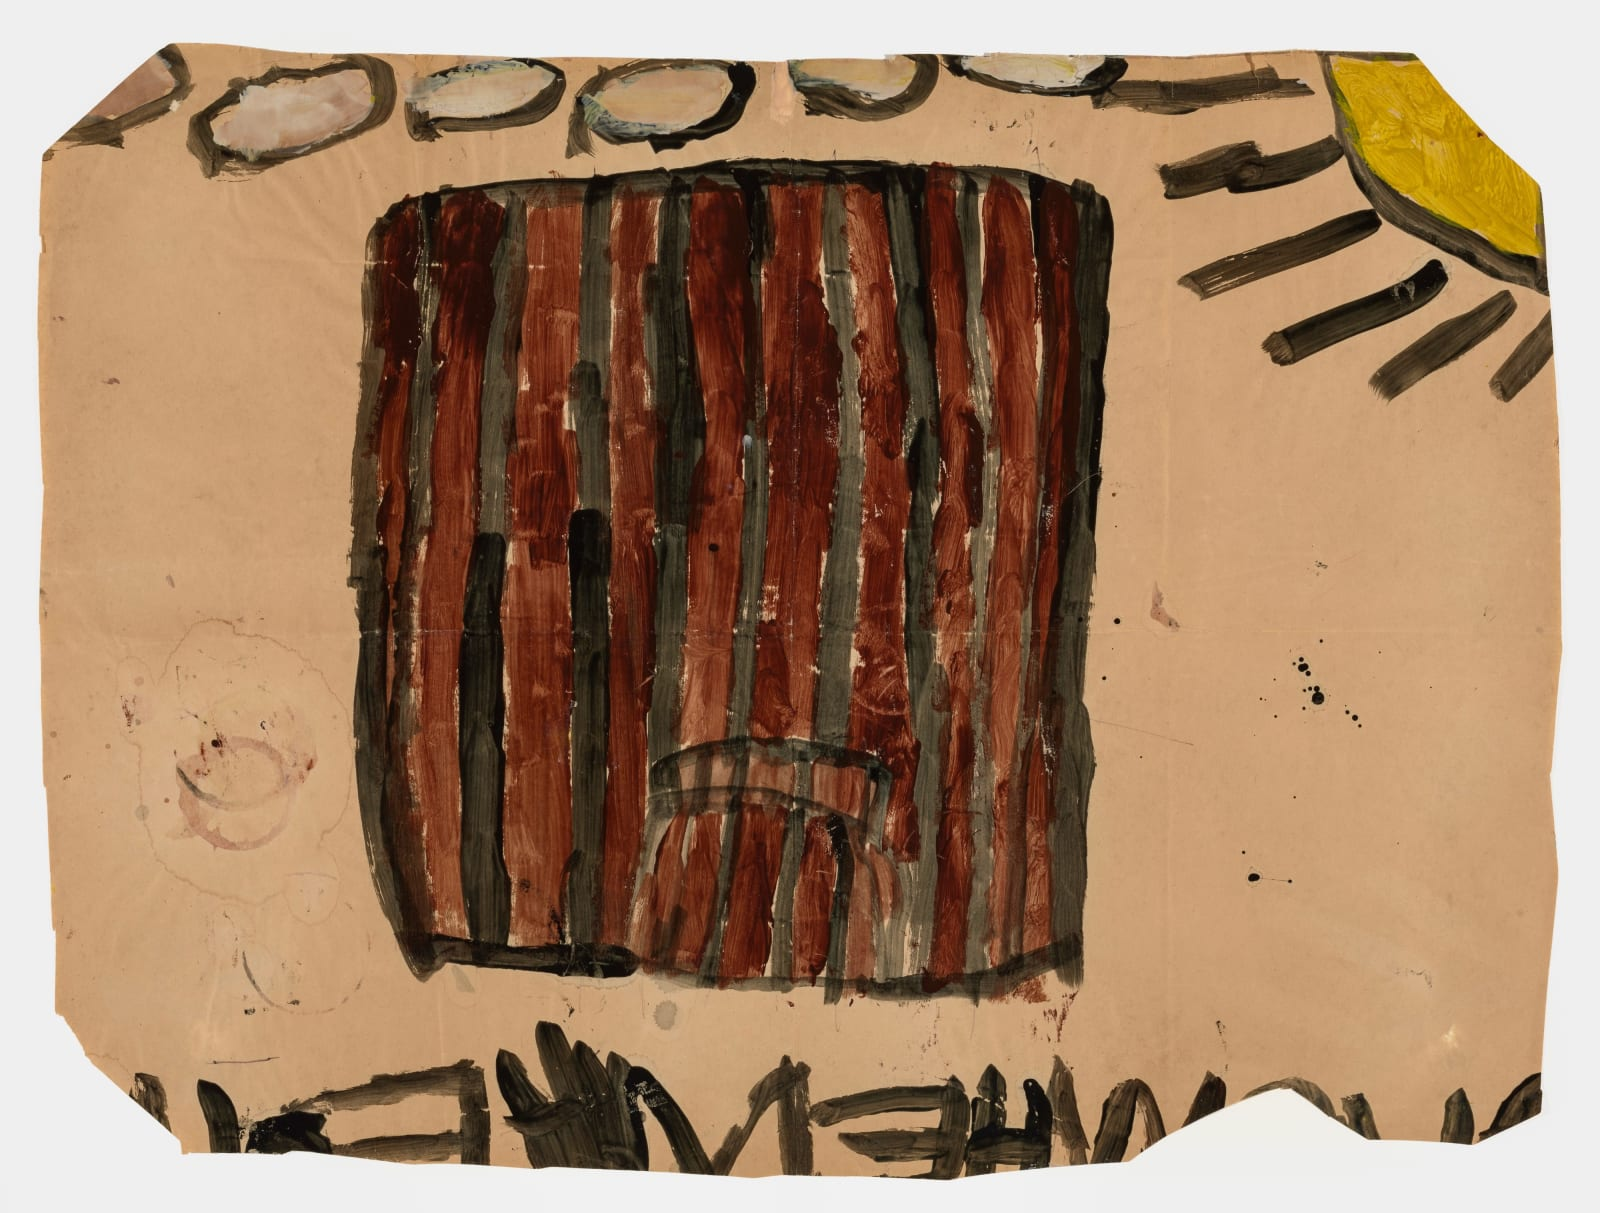 Untitled (No.16), 1972-1980 Tempera on paper 21 x 28 in (53.3 x 71.1 cm) (LM 128)